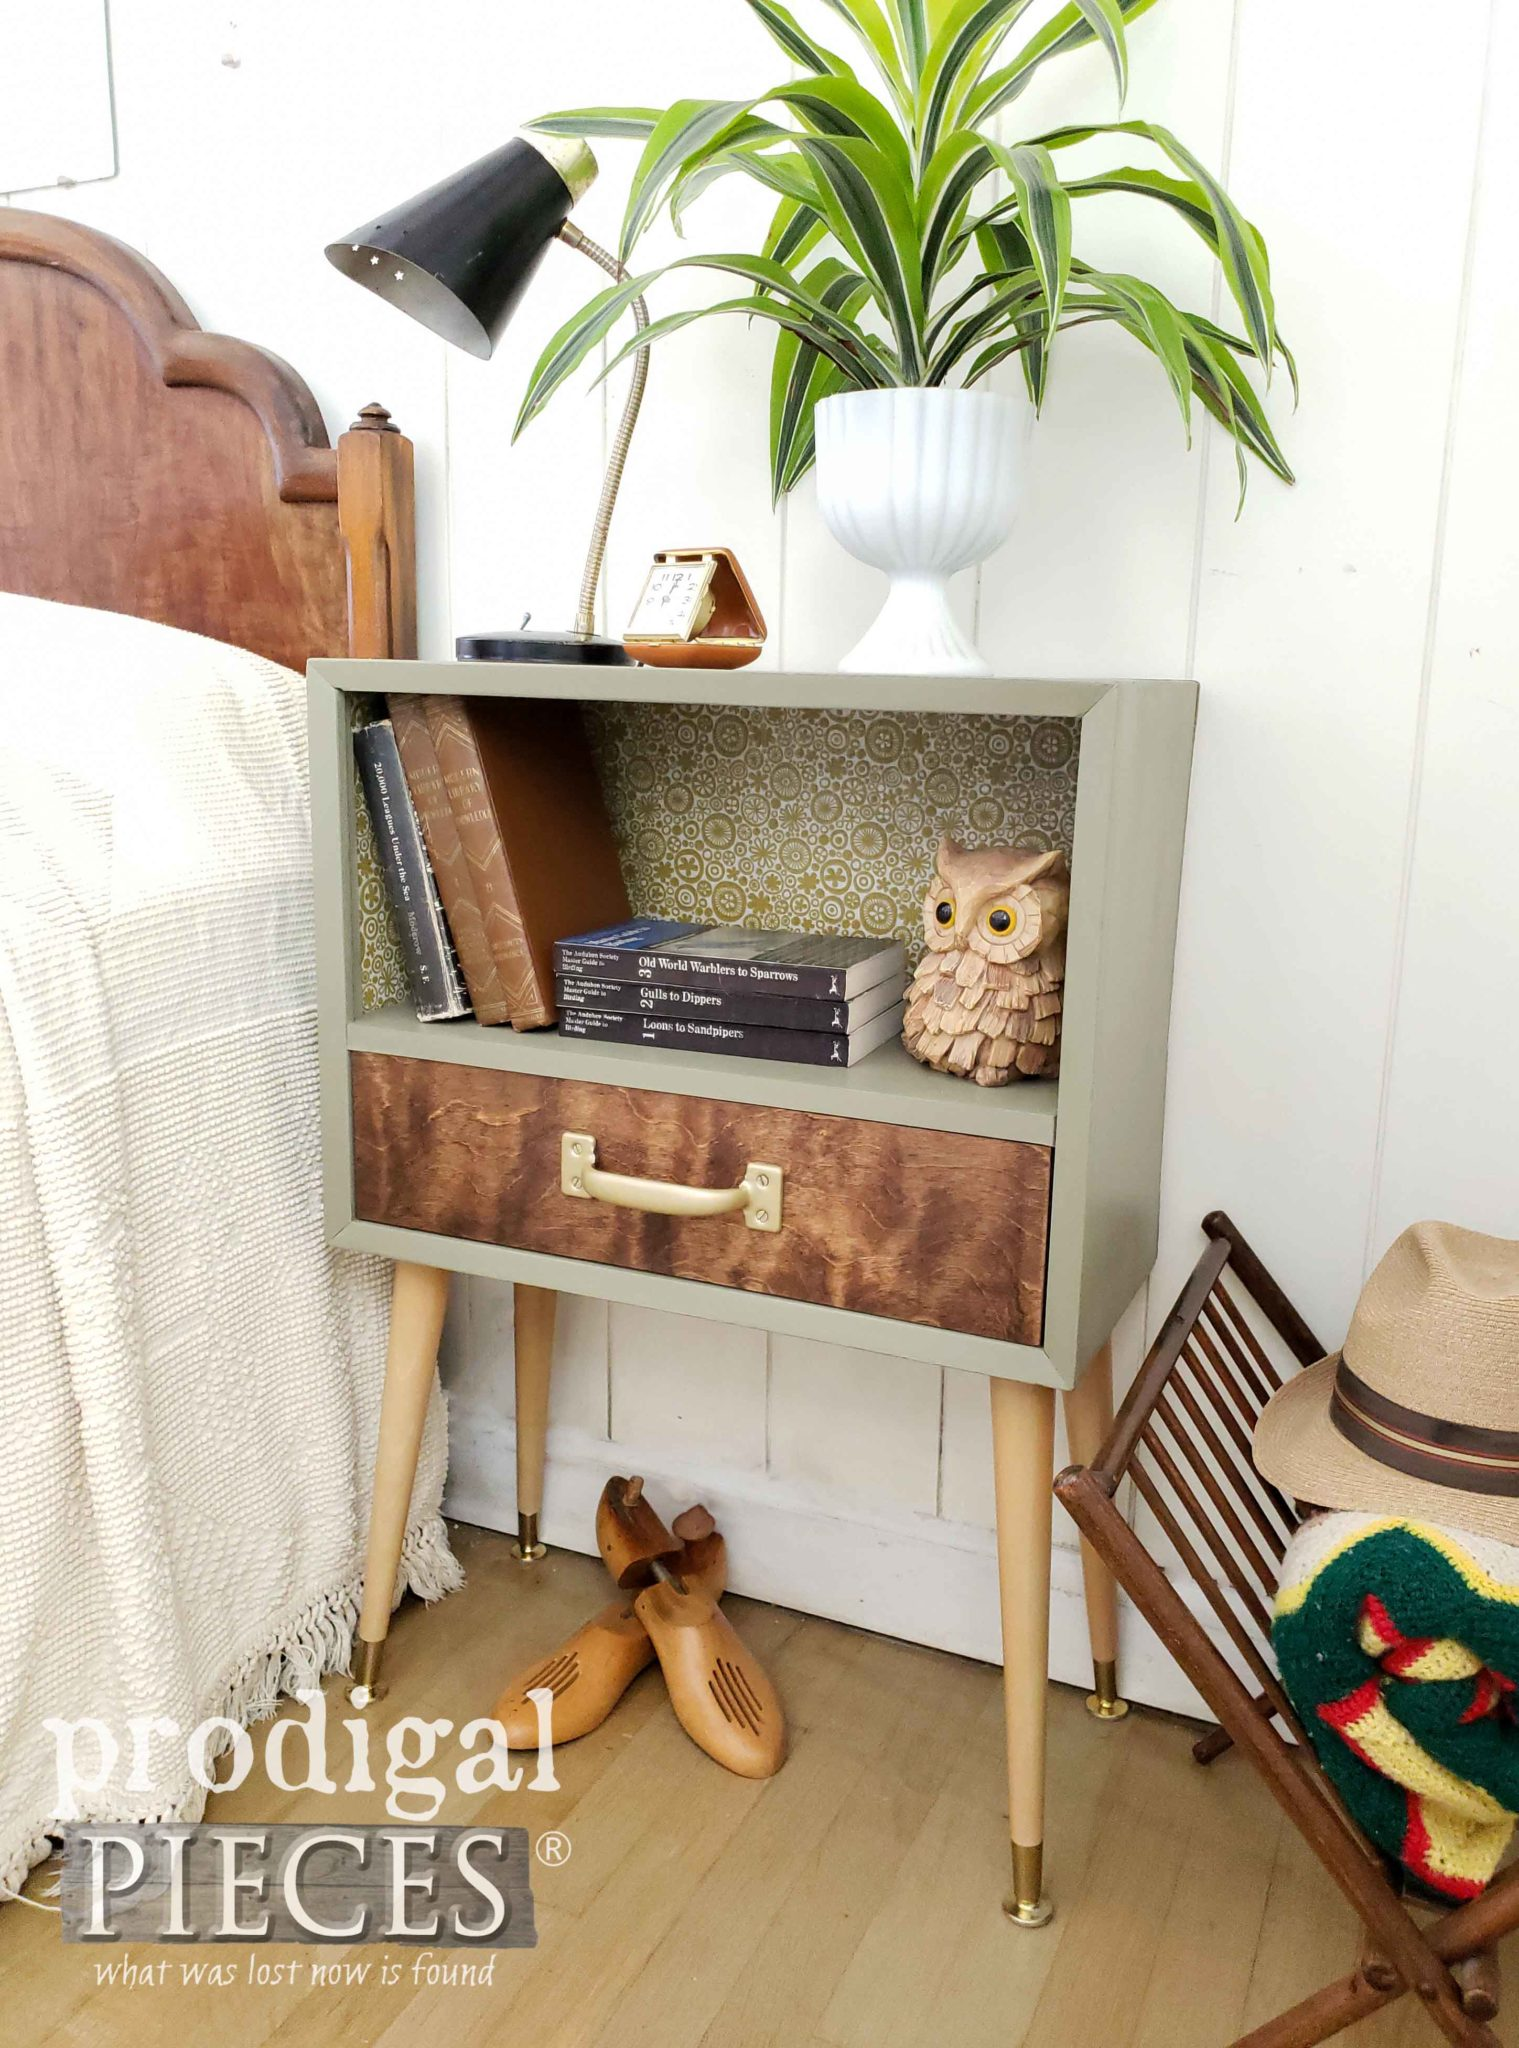 Fantastic Mid Century Nightstand Built by Larissa of Prodigal Pieces Using Reclaimed Luggage | prodigalpieces.com